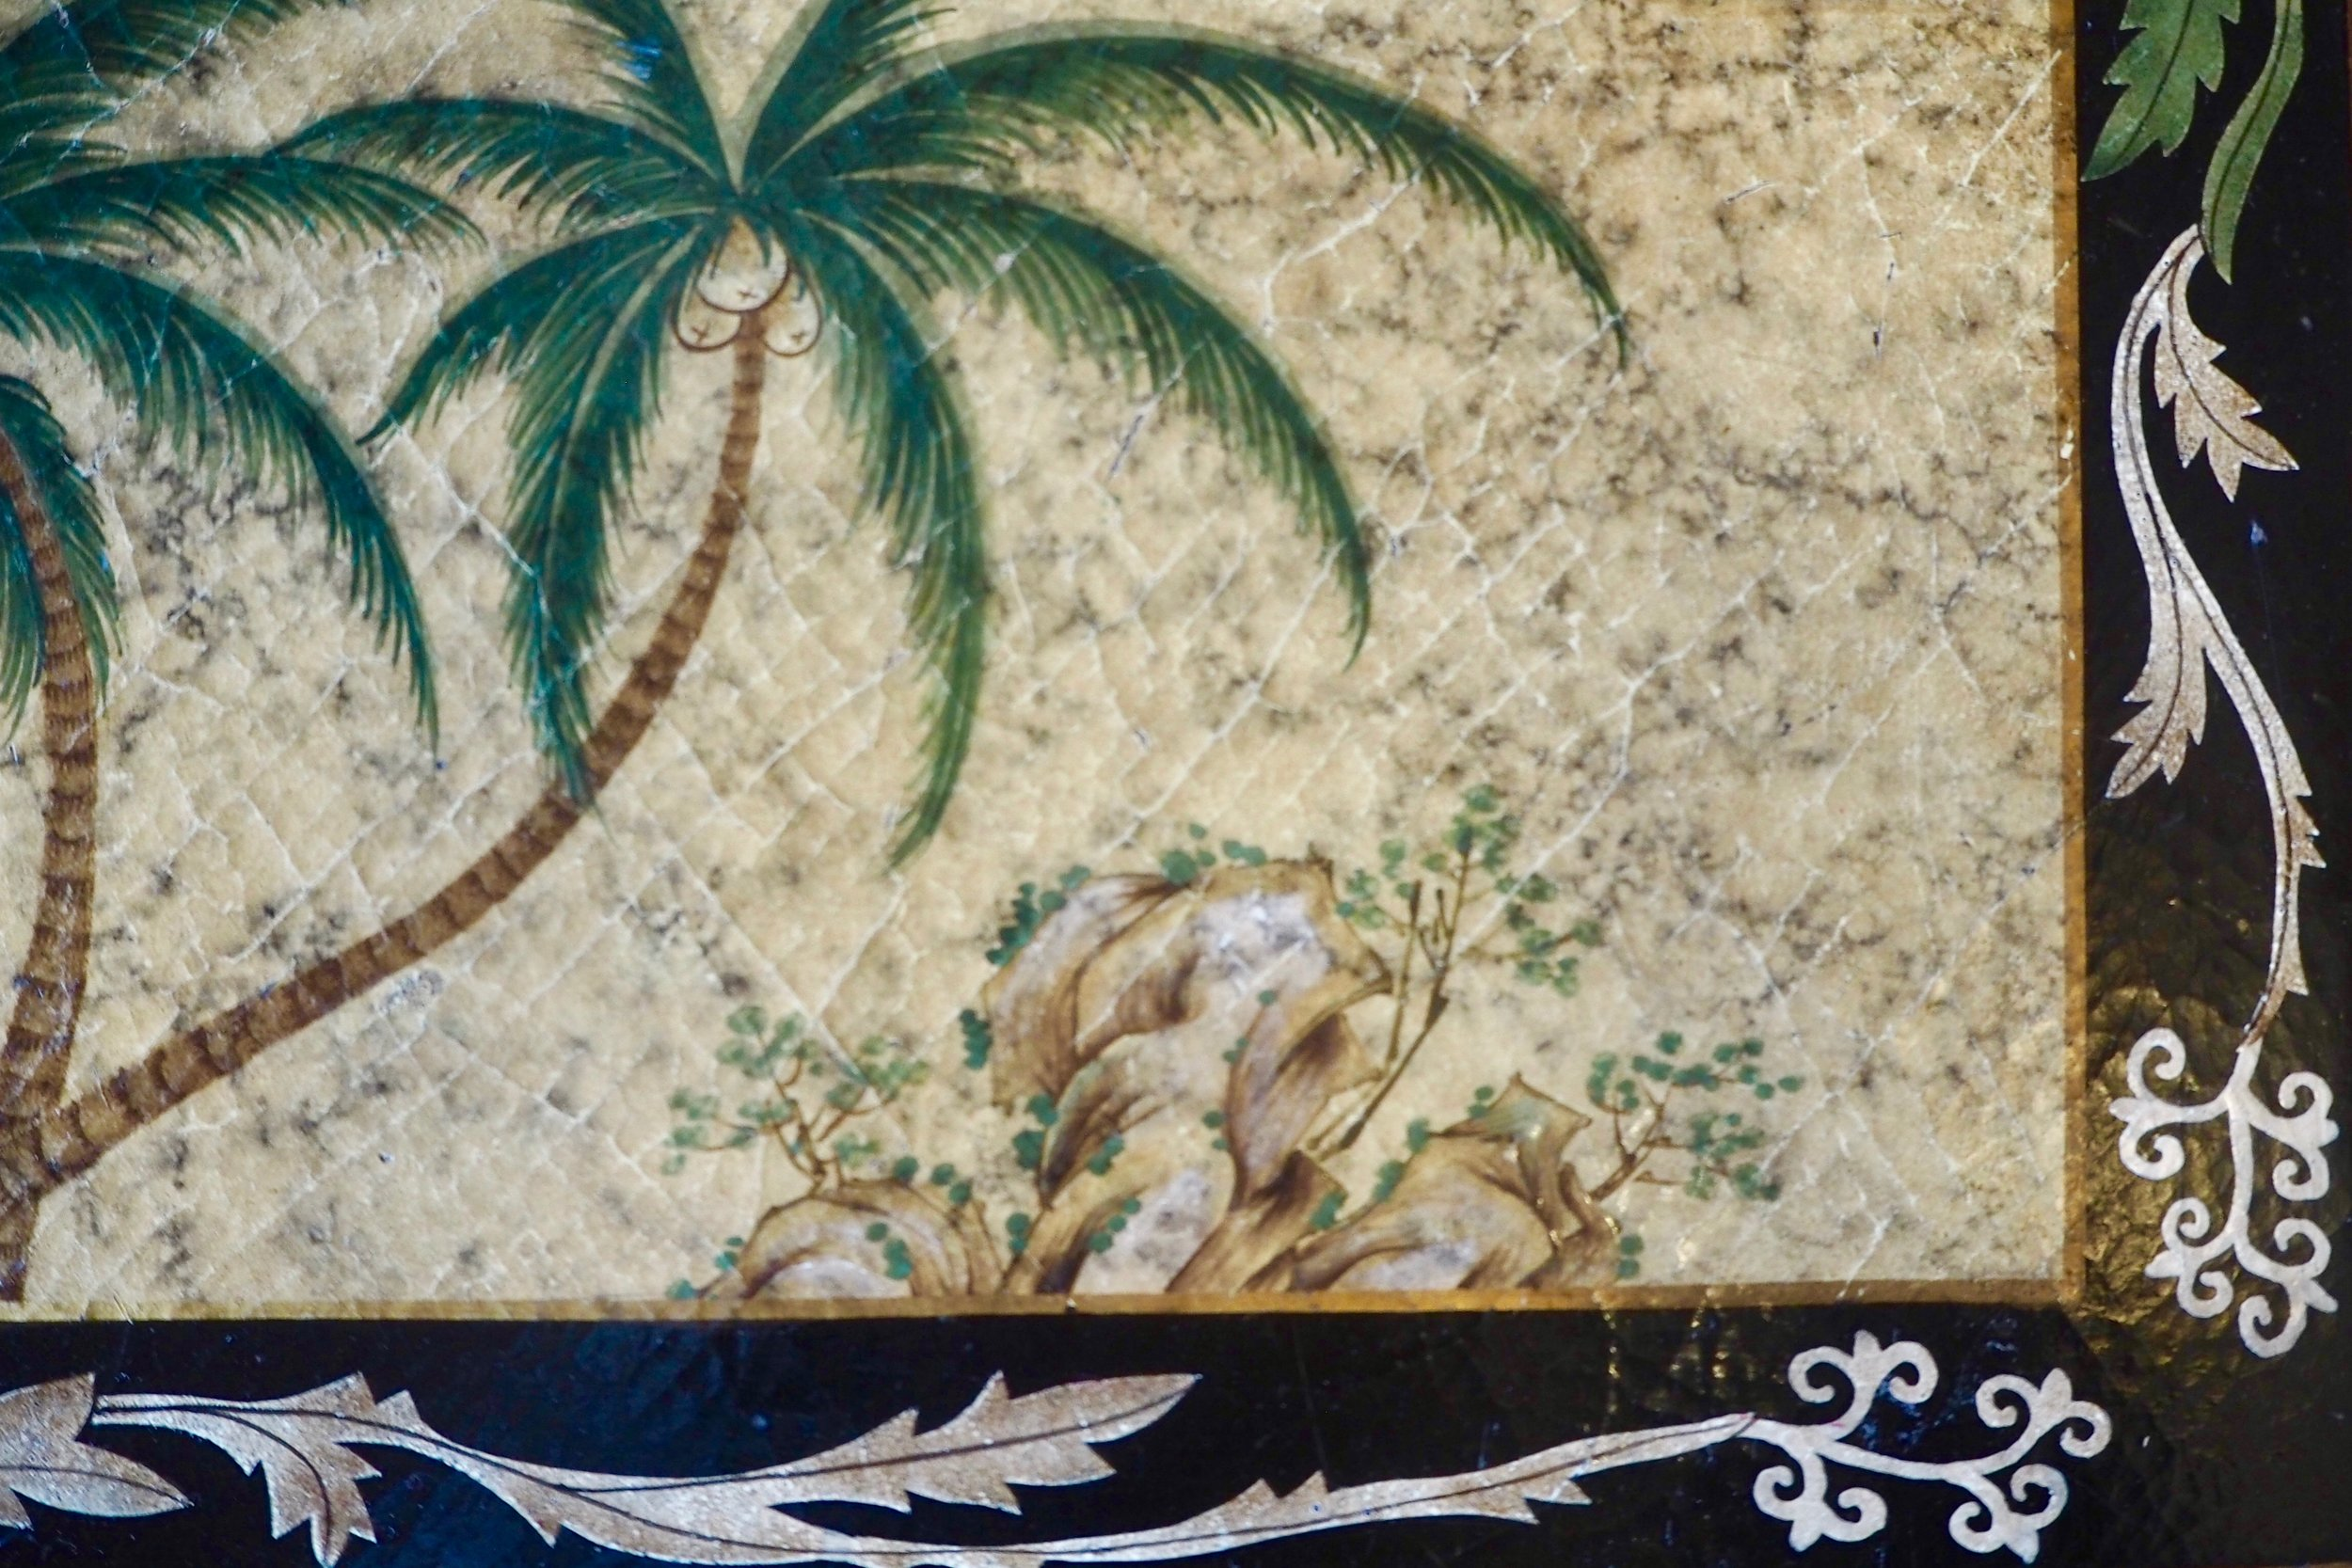 Table detail in the palm print room at Villeroy & Boch.jpg